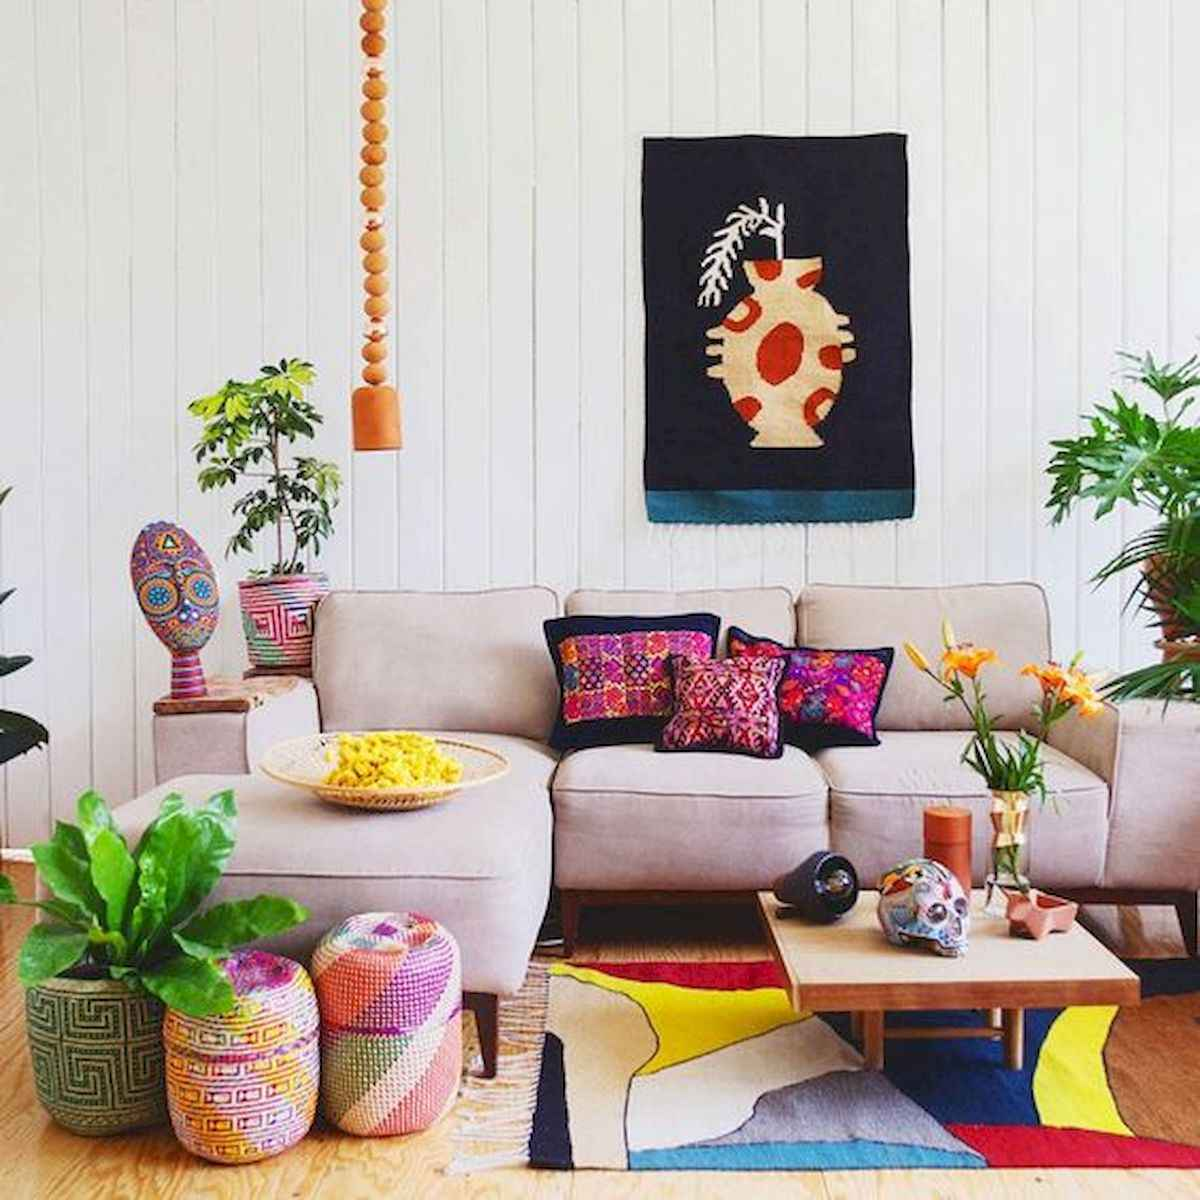 90+ Fantastic Colorful Apartment Decor Ideas And Remodel for Summer Project (59)